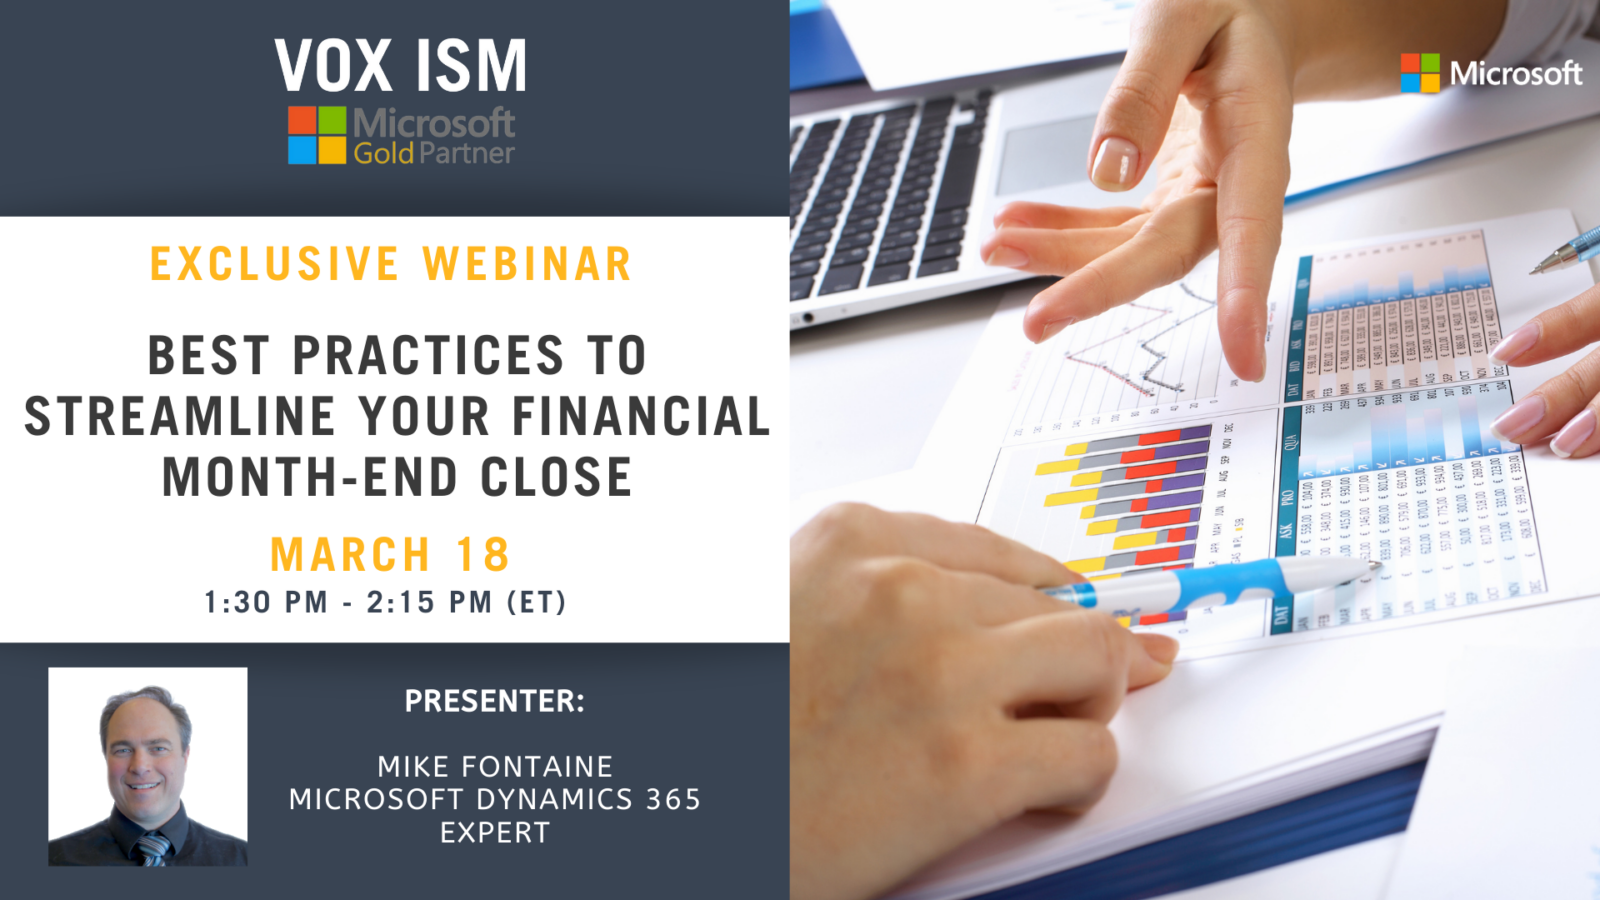 Best Practices to Streamline Your Financial Month-End Close - March 18 - Webinar